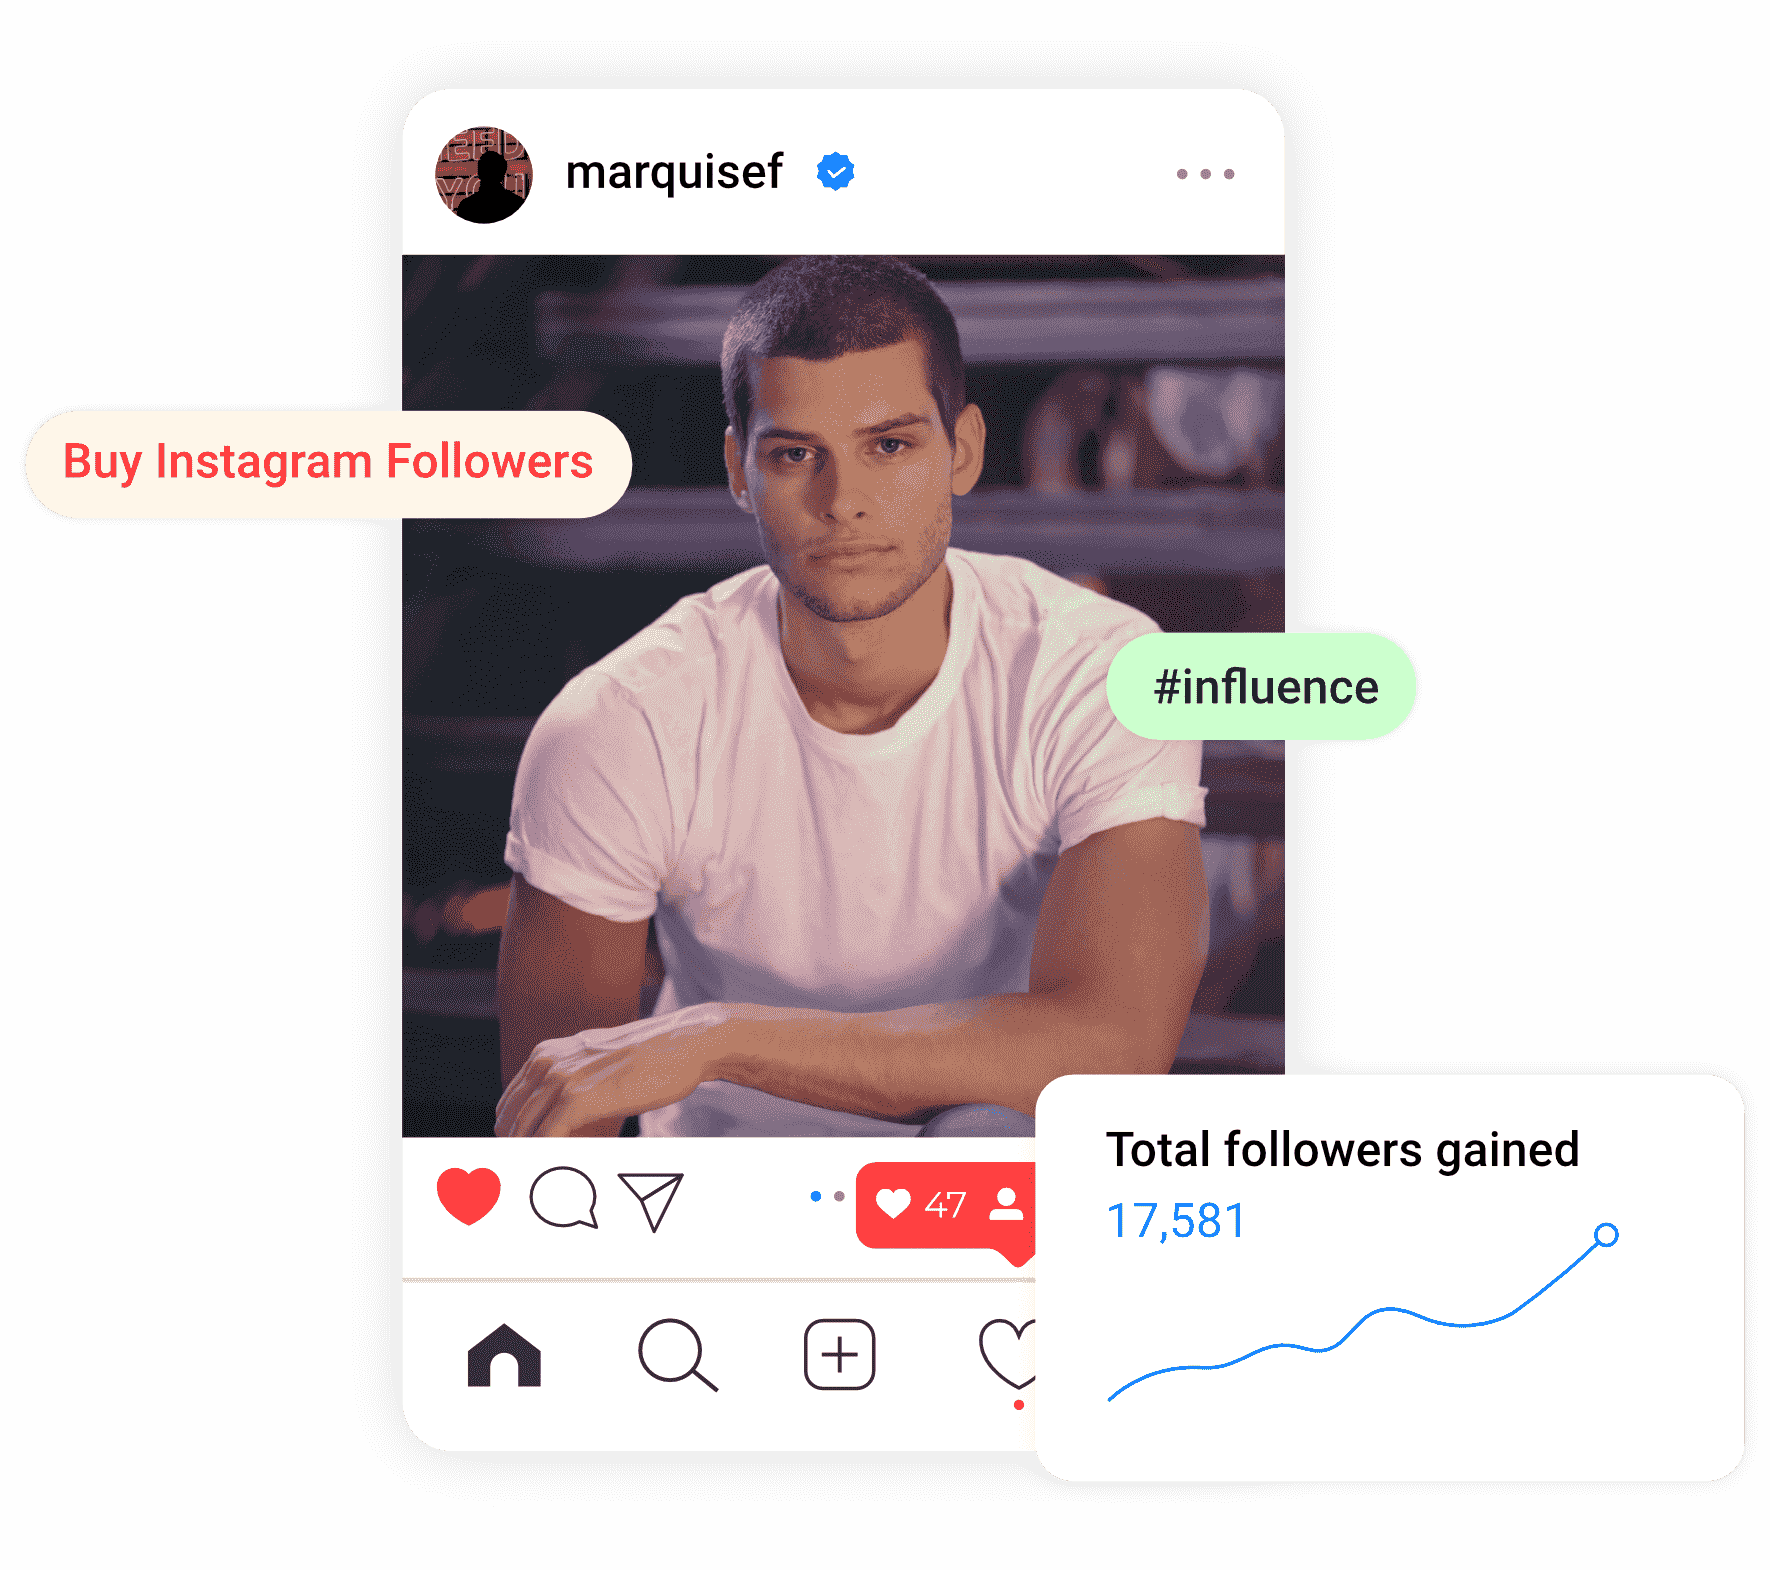 an image of marquisef who purchased instagram followers from buysellshoutouts.com